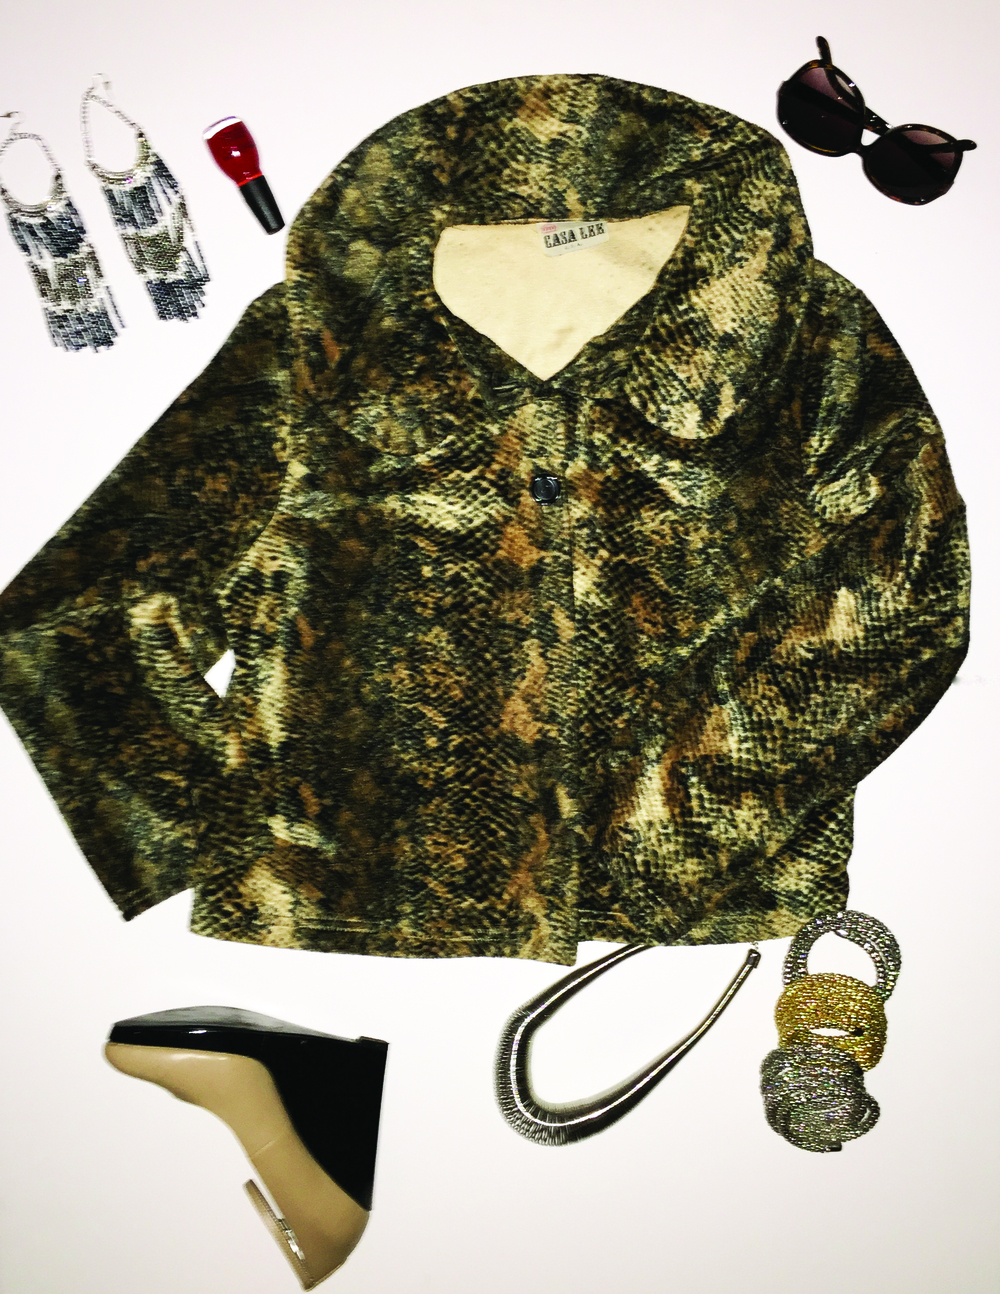 Luncheon with the girls, this vintage inspired jacket is perfect. Don't forget to accessorize.